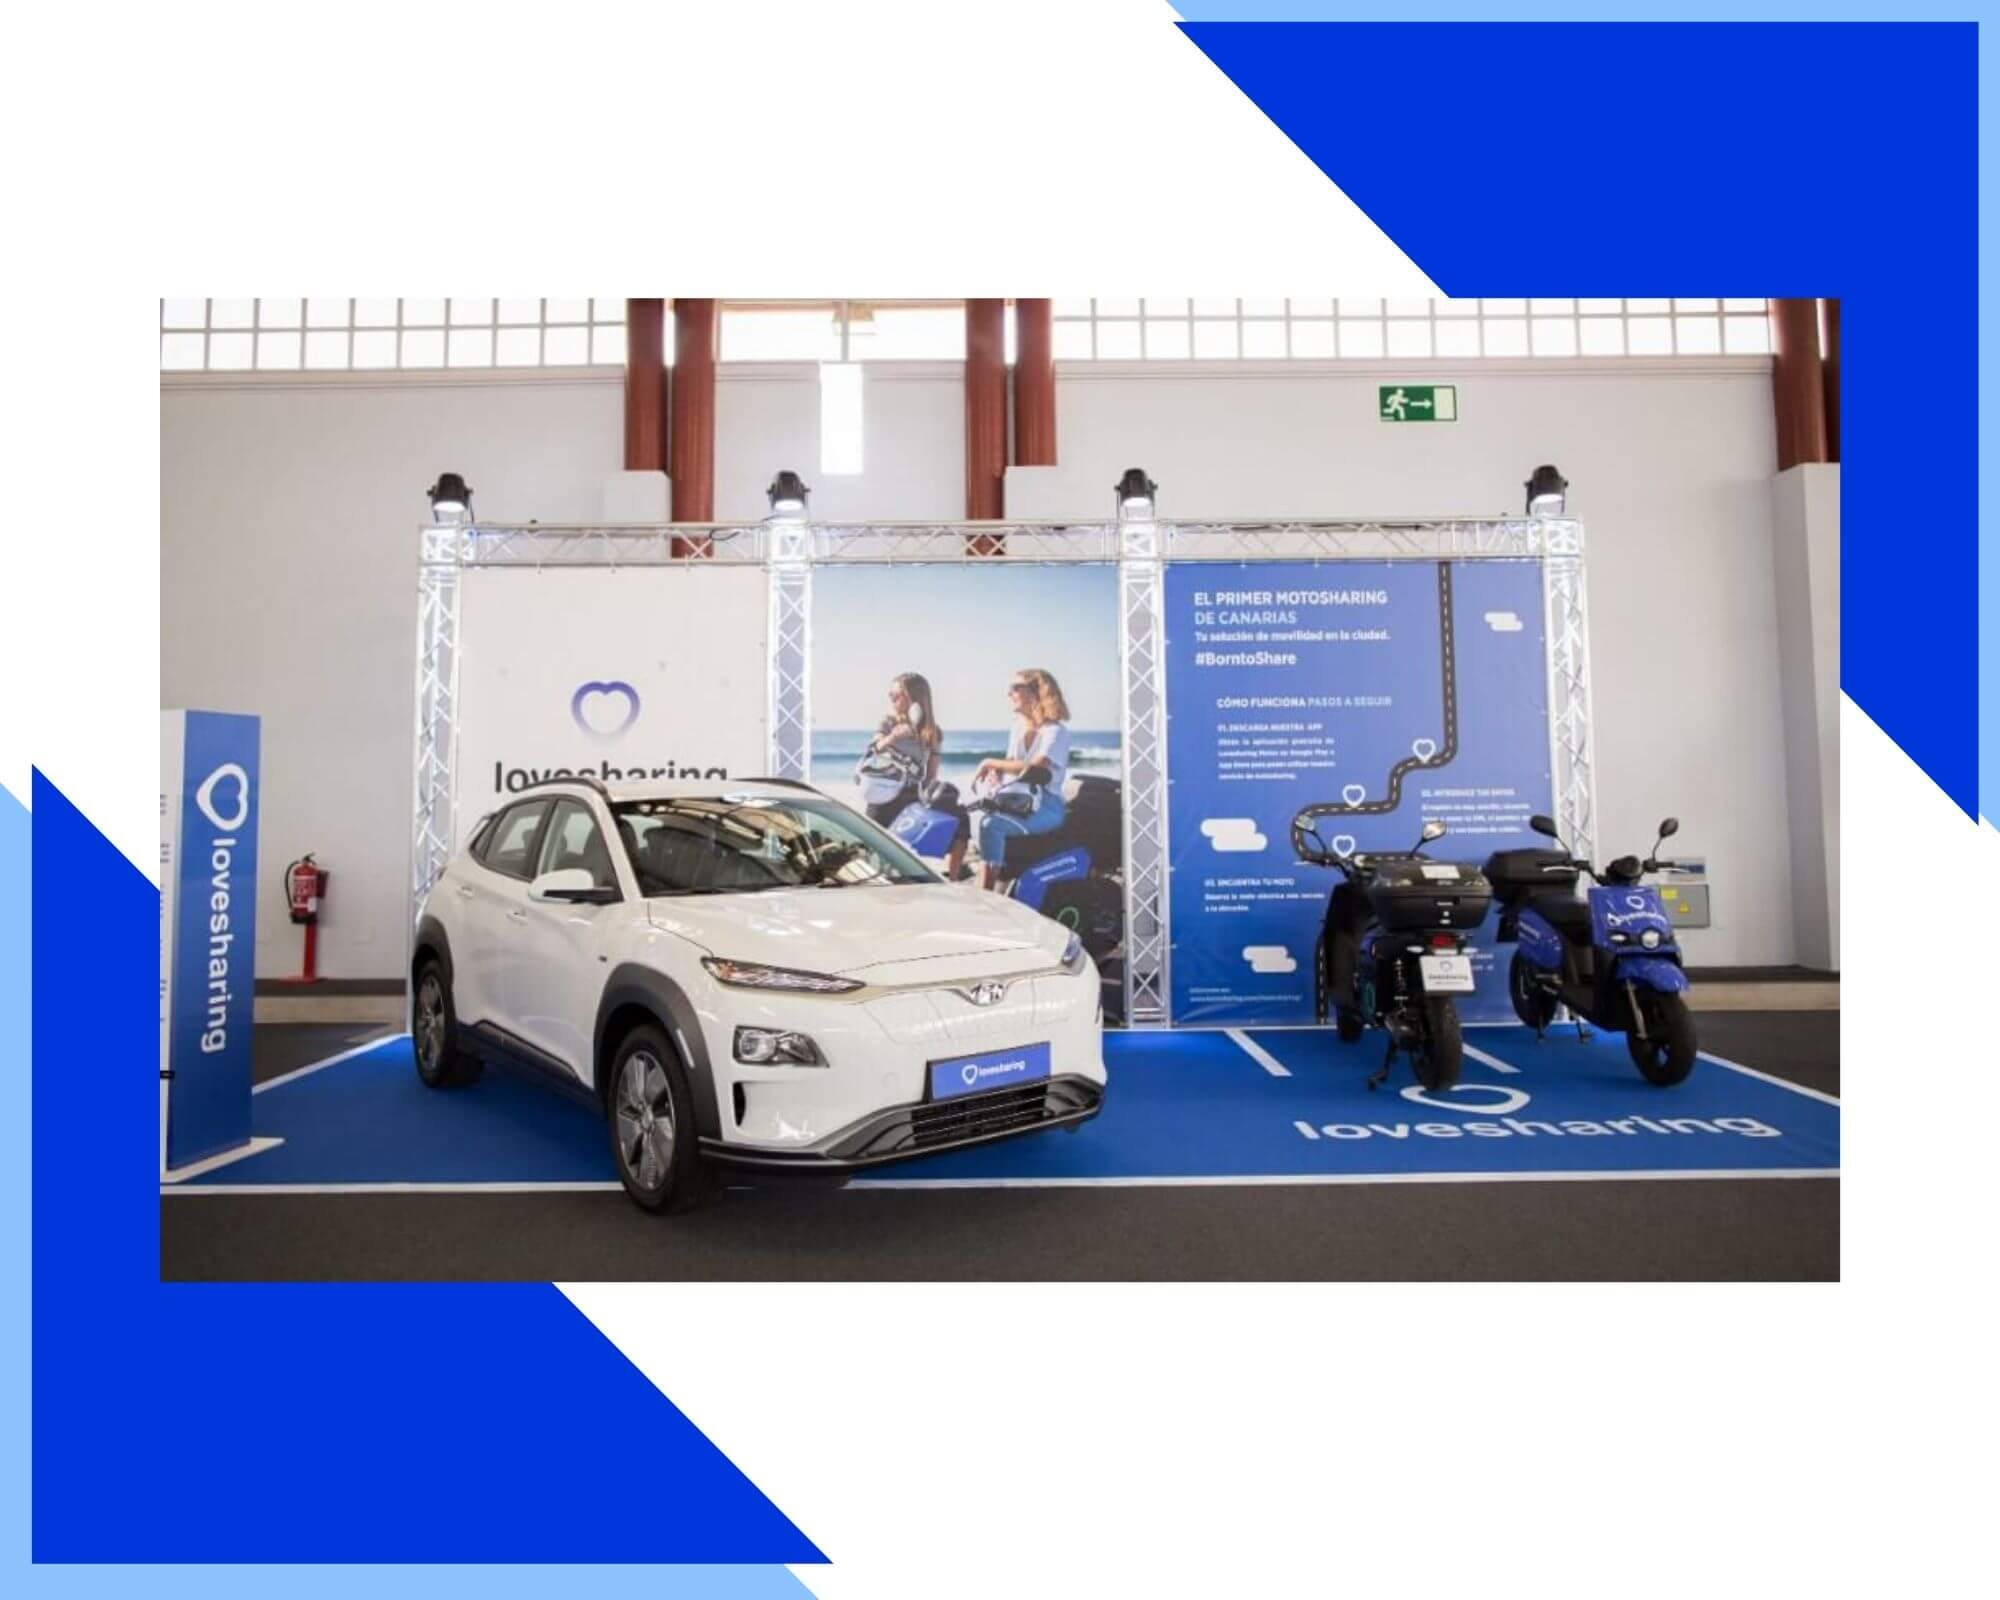 salon vehiculos electricos de Canarias